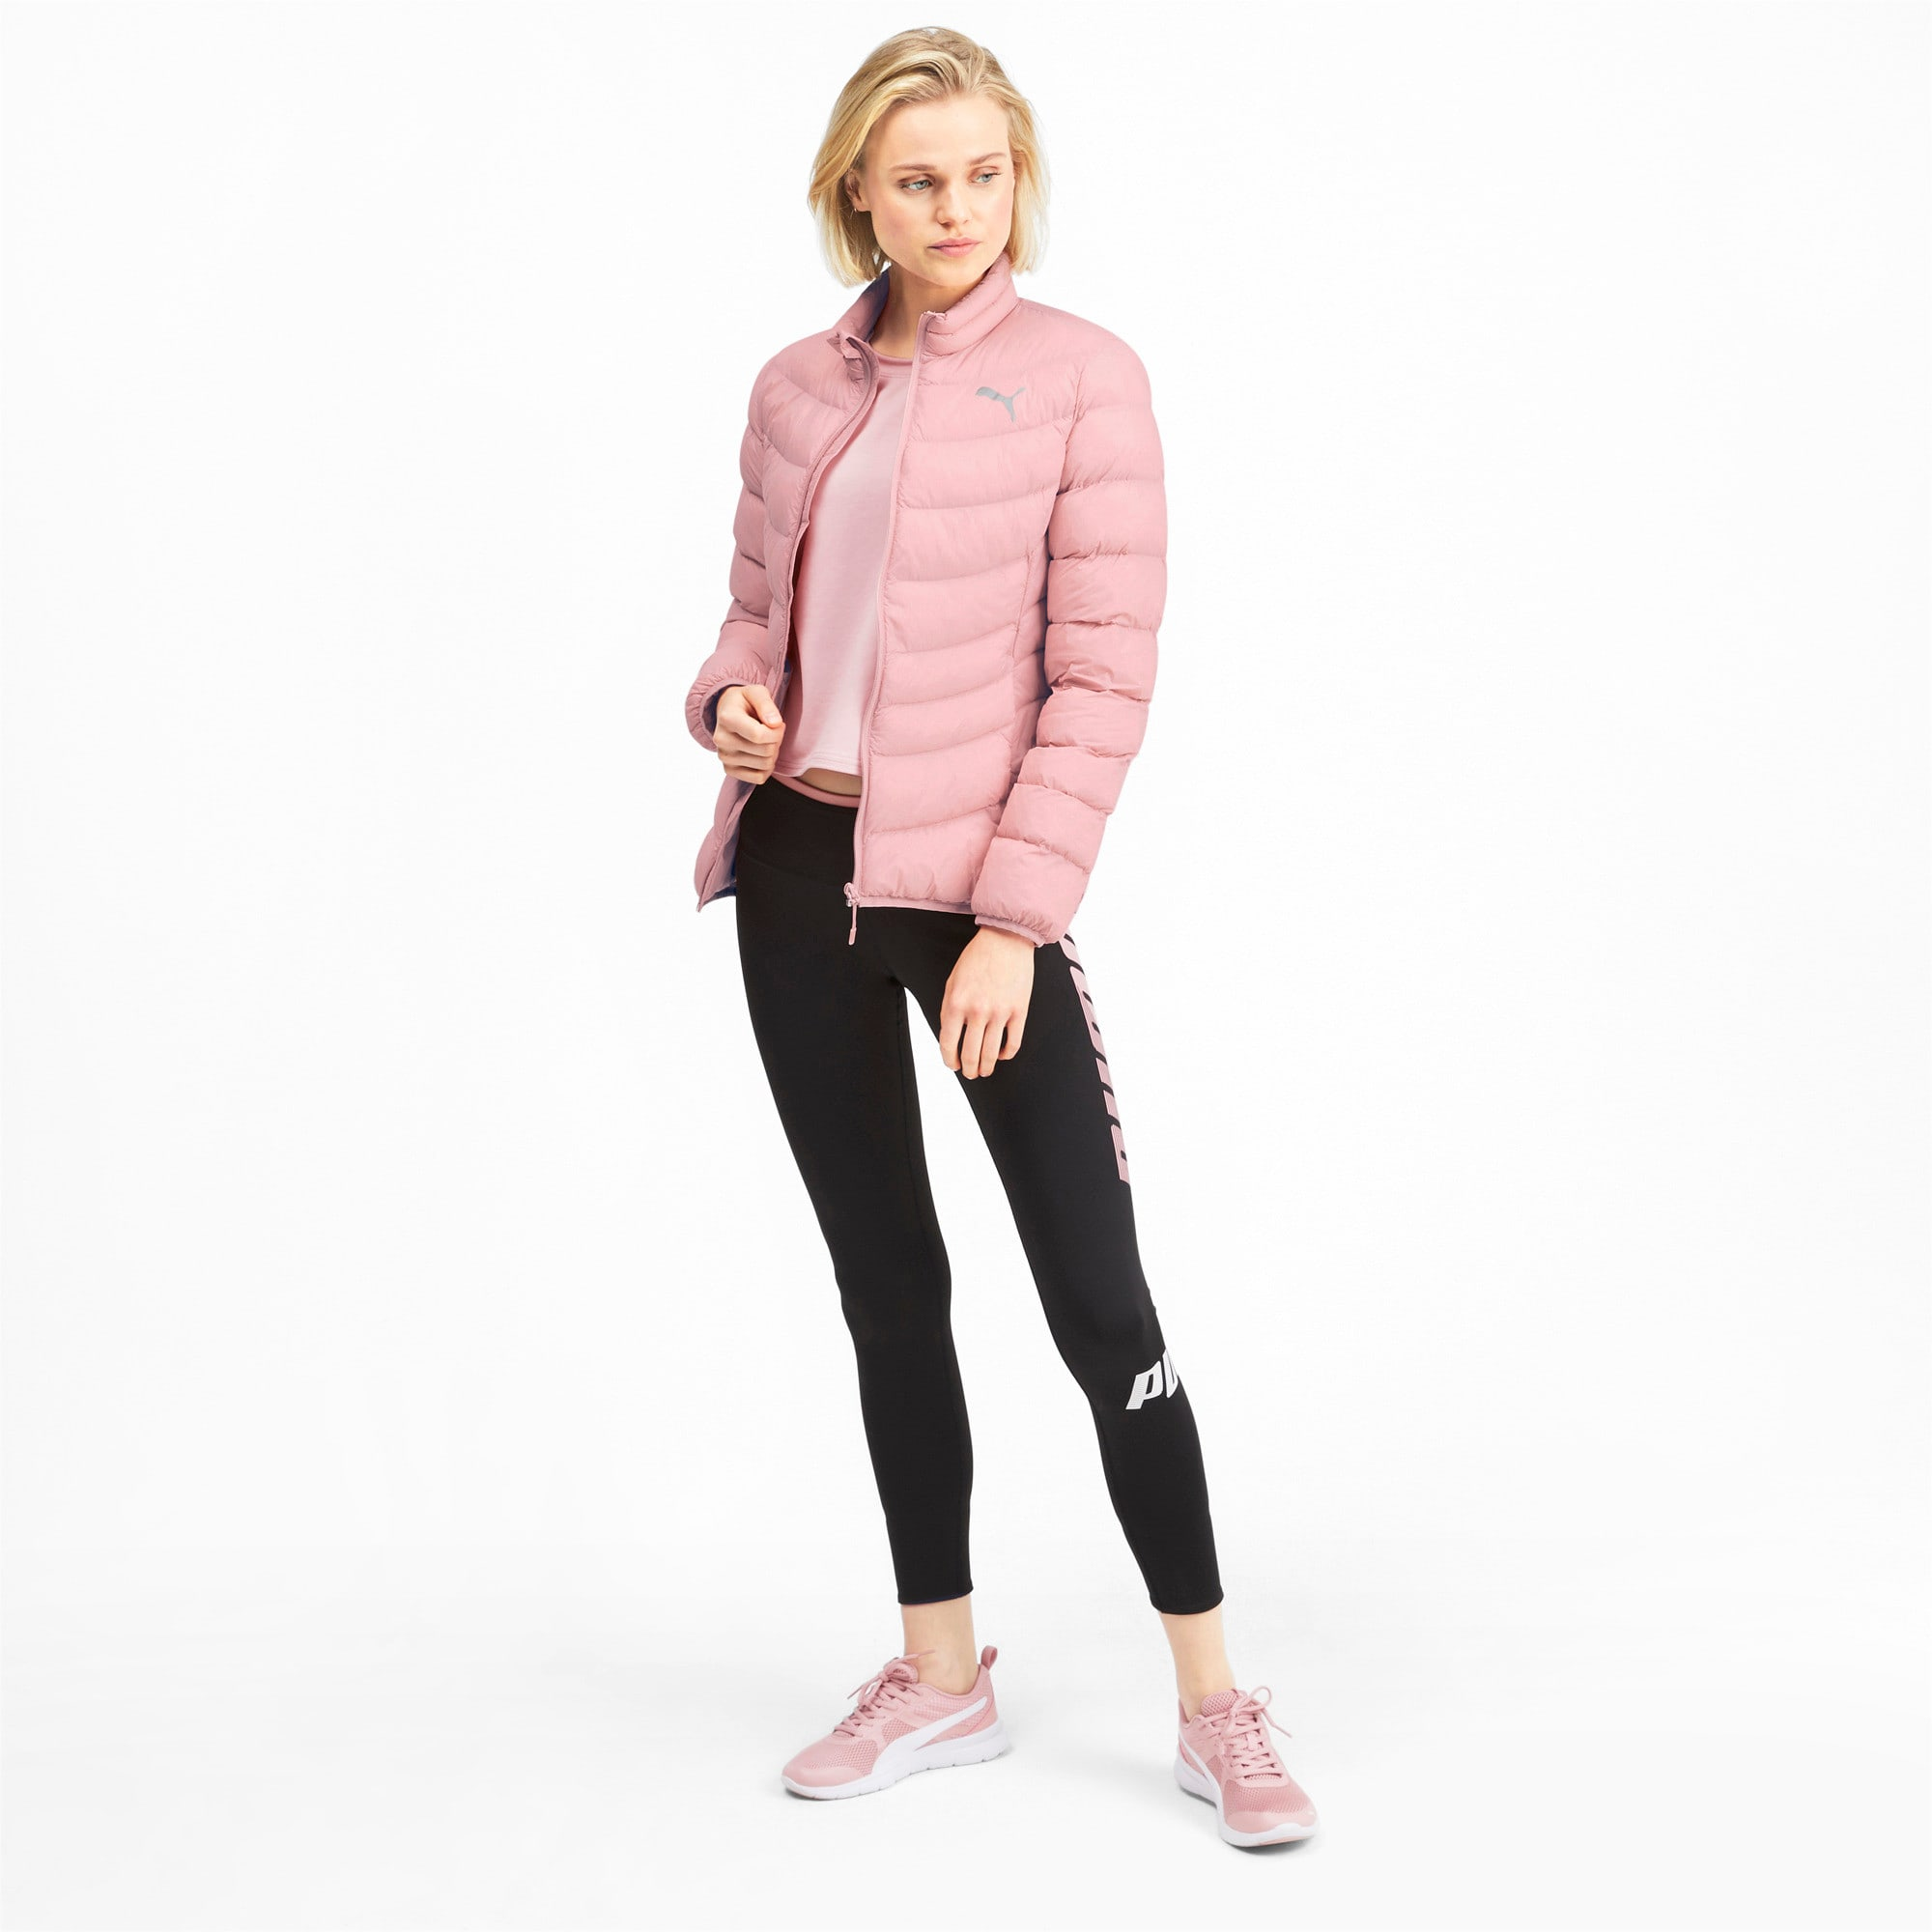 Thumbnail 3 of Ultralight warmCELL Women's Jacket, Bridal Rose, medium